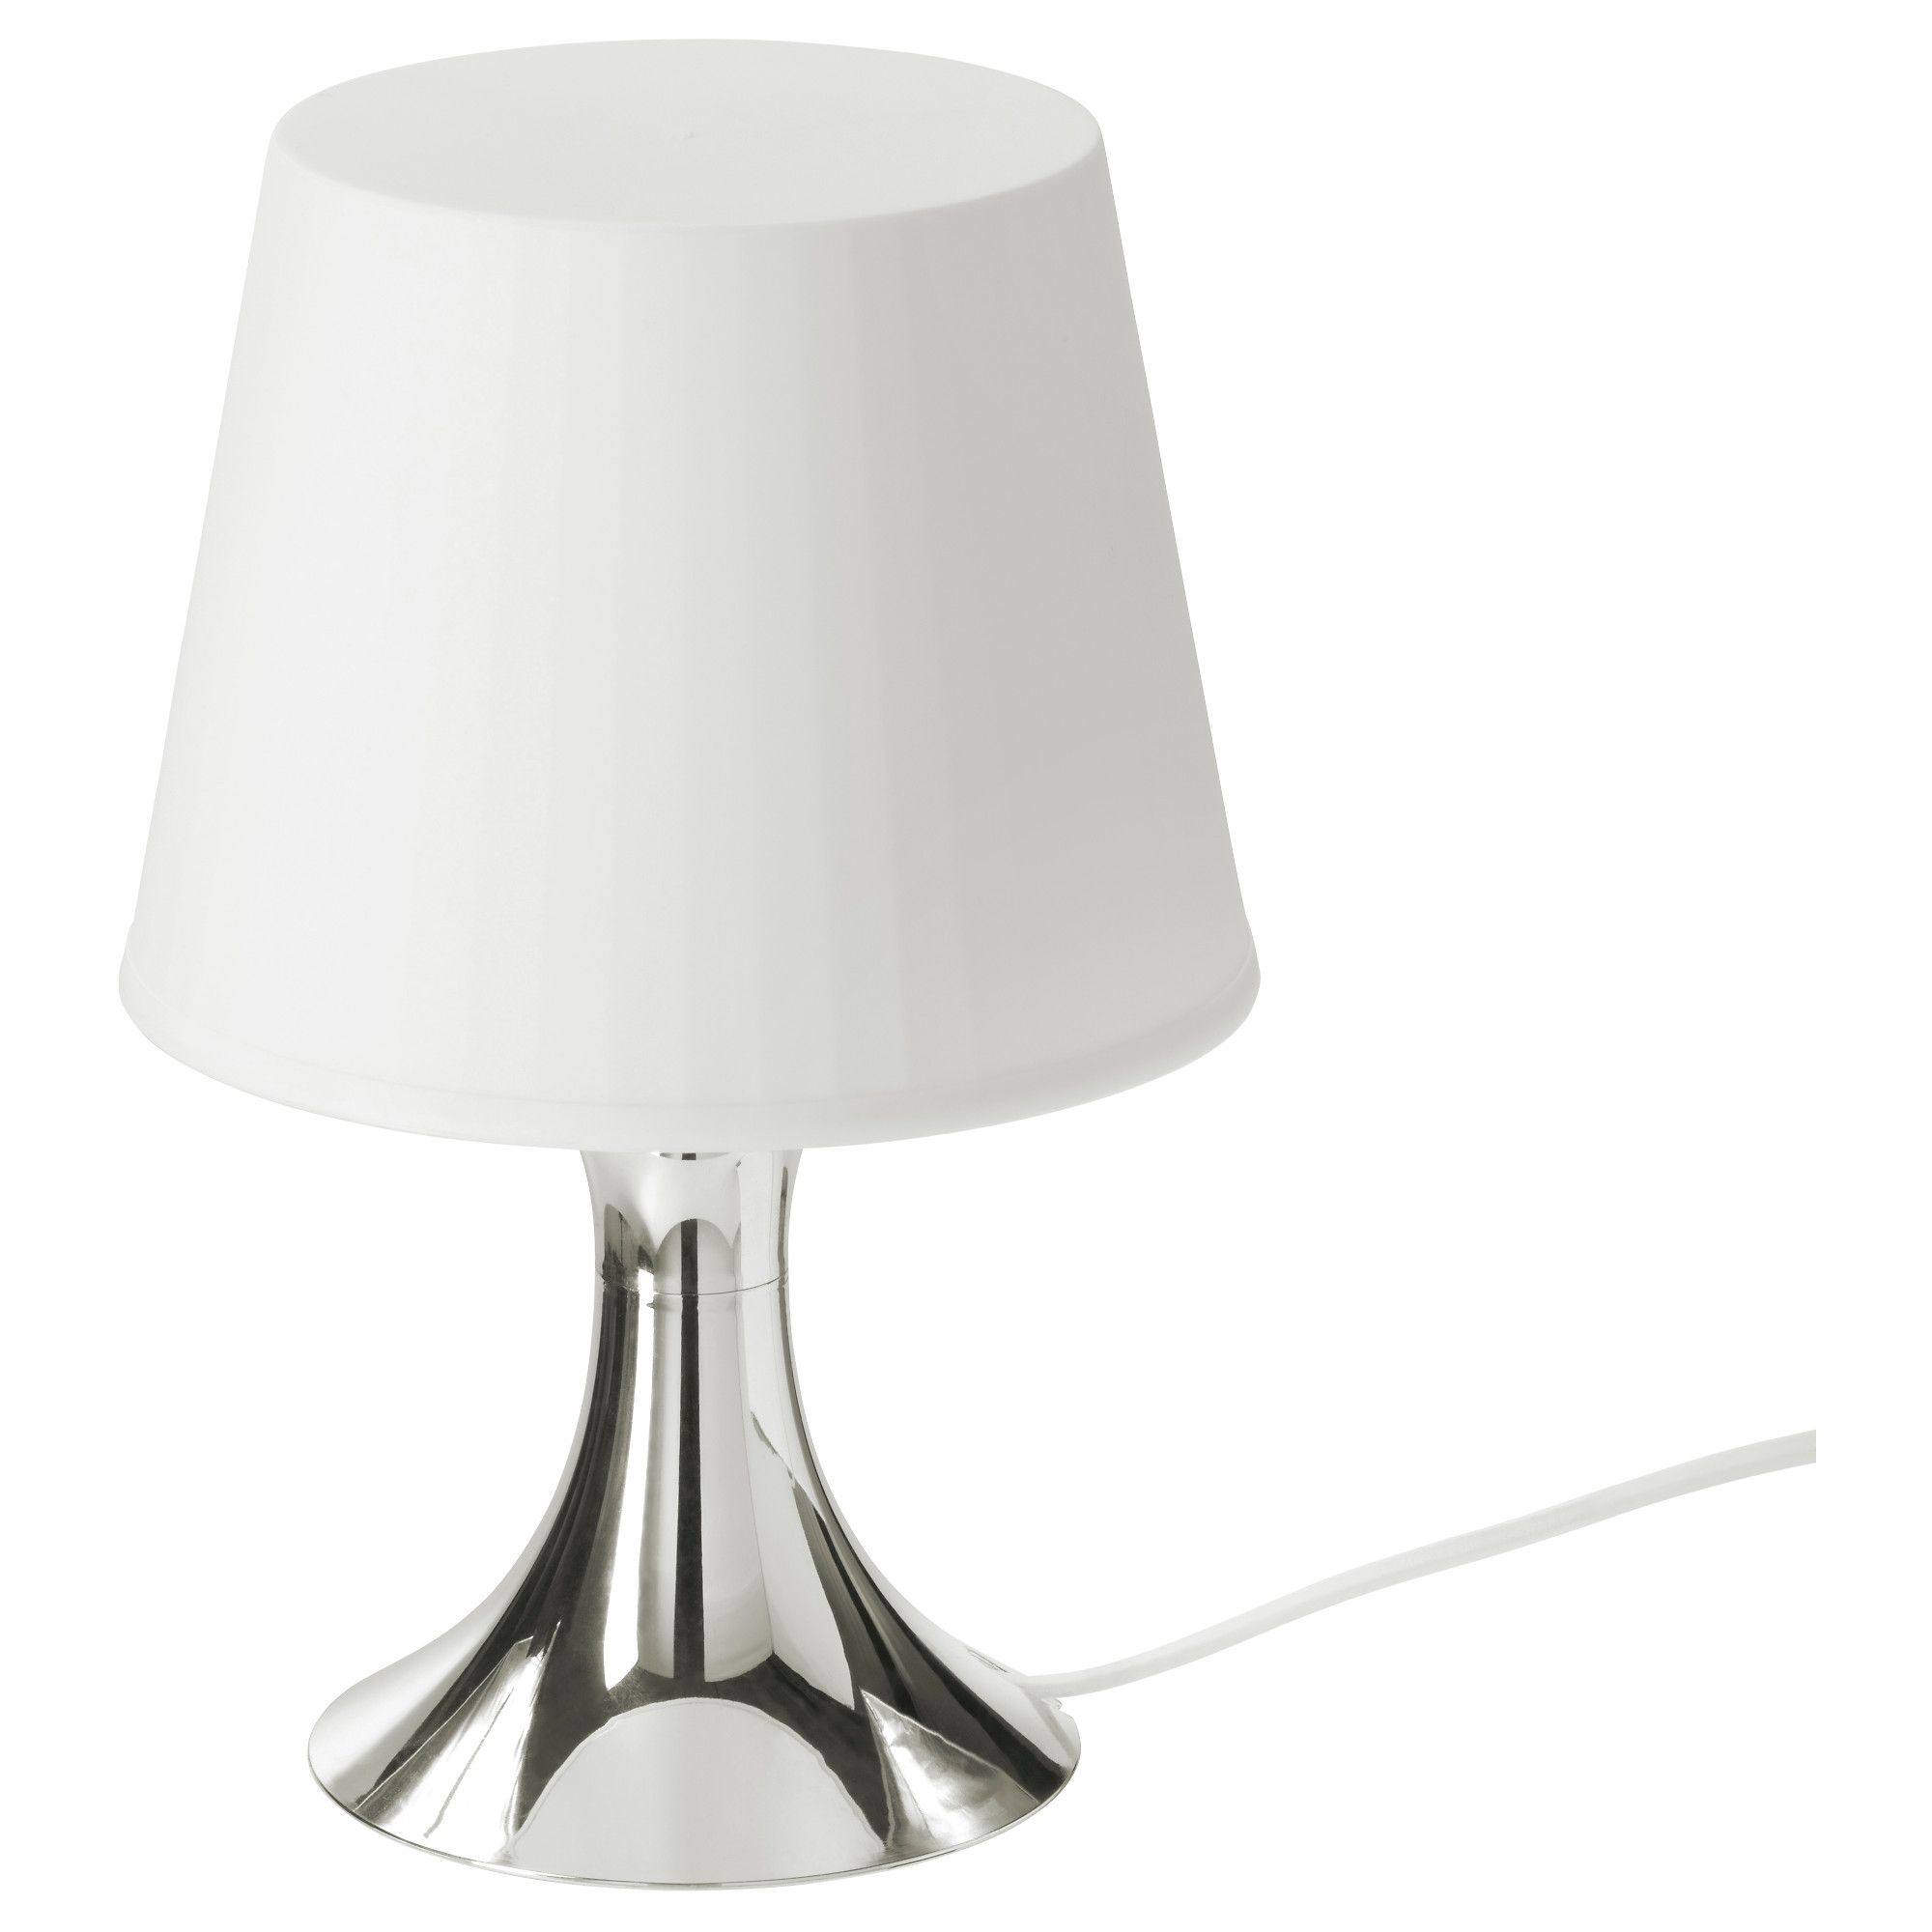 LAMPAN Table lamp with LED bulb light pink 11 | Table